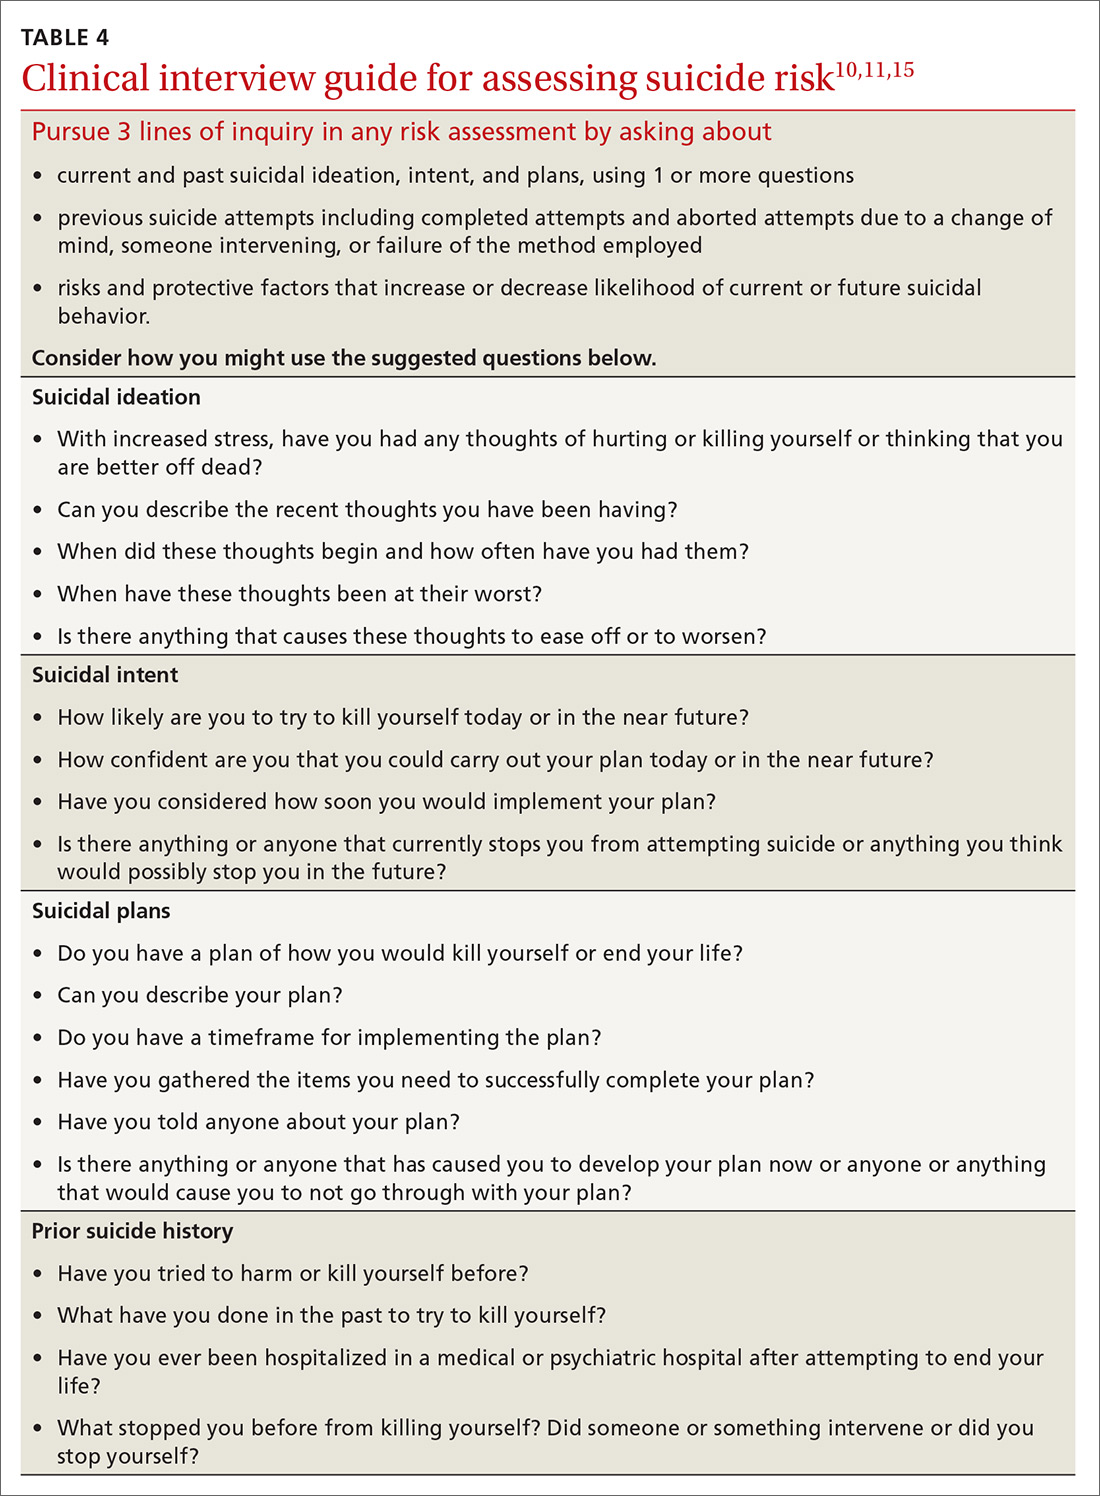 Clinical interview guide for assessing suicide risk